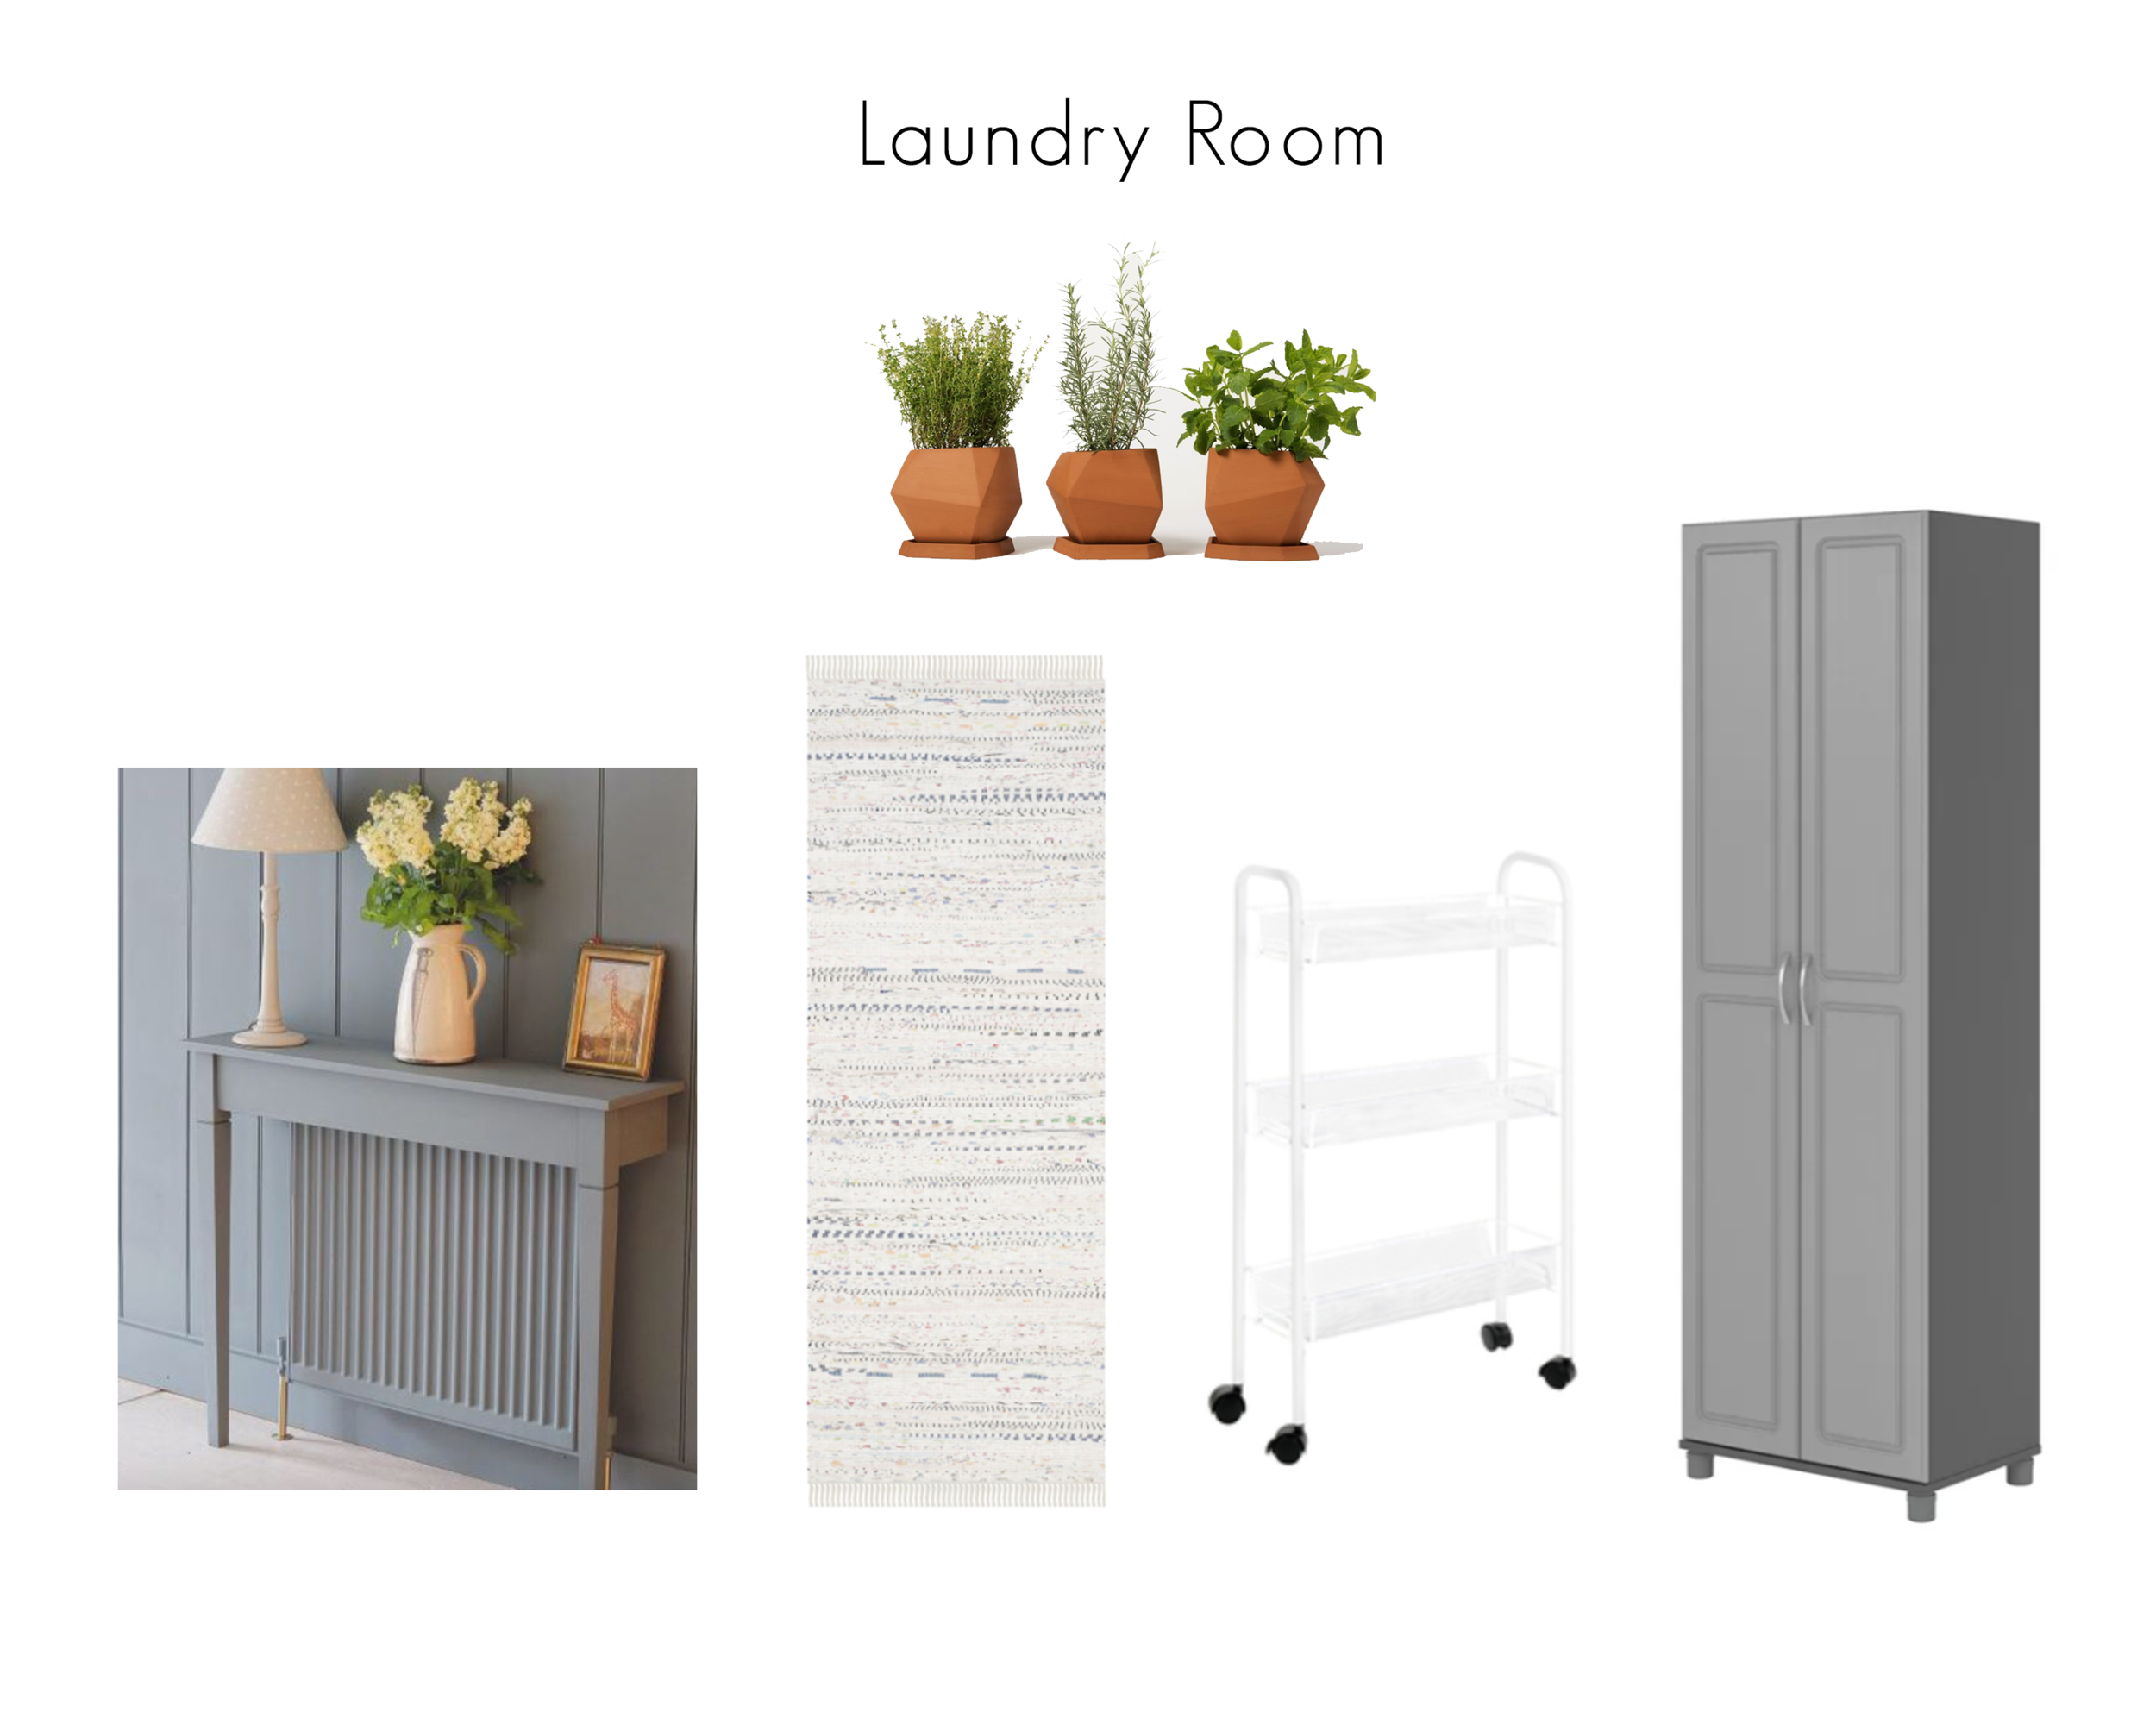 Laundry Room.png